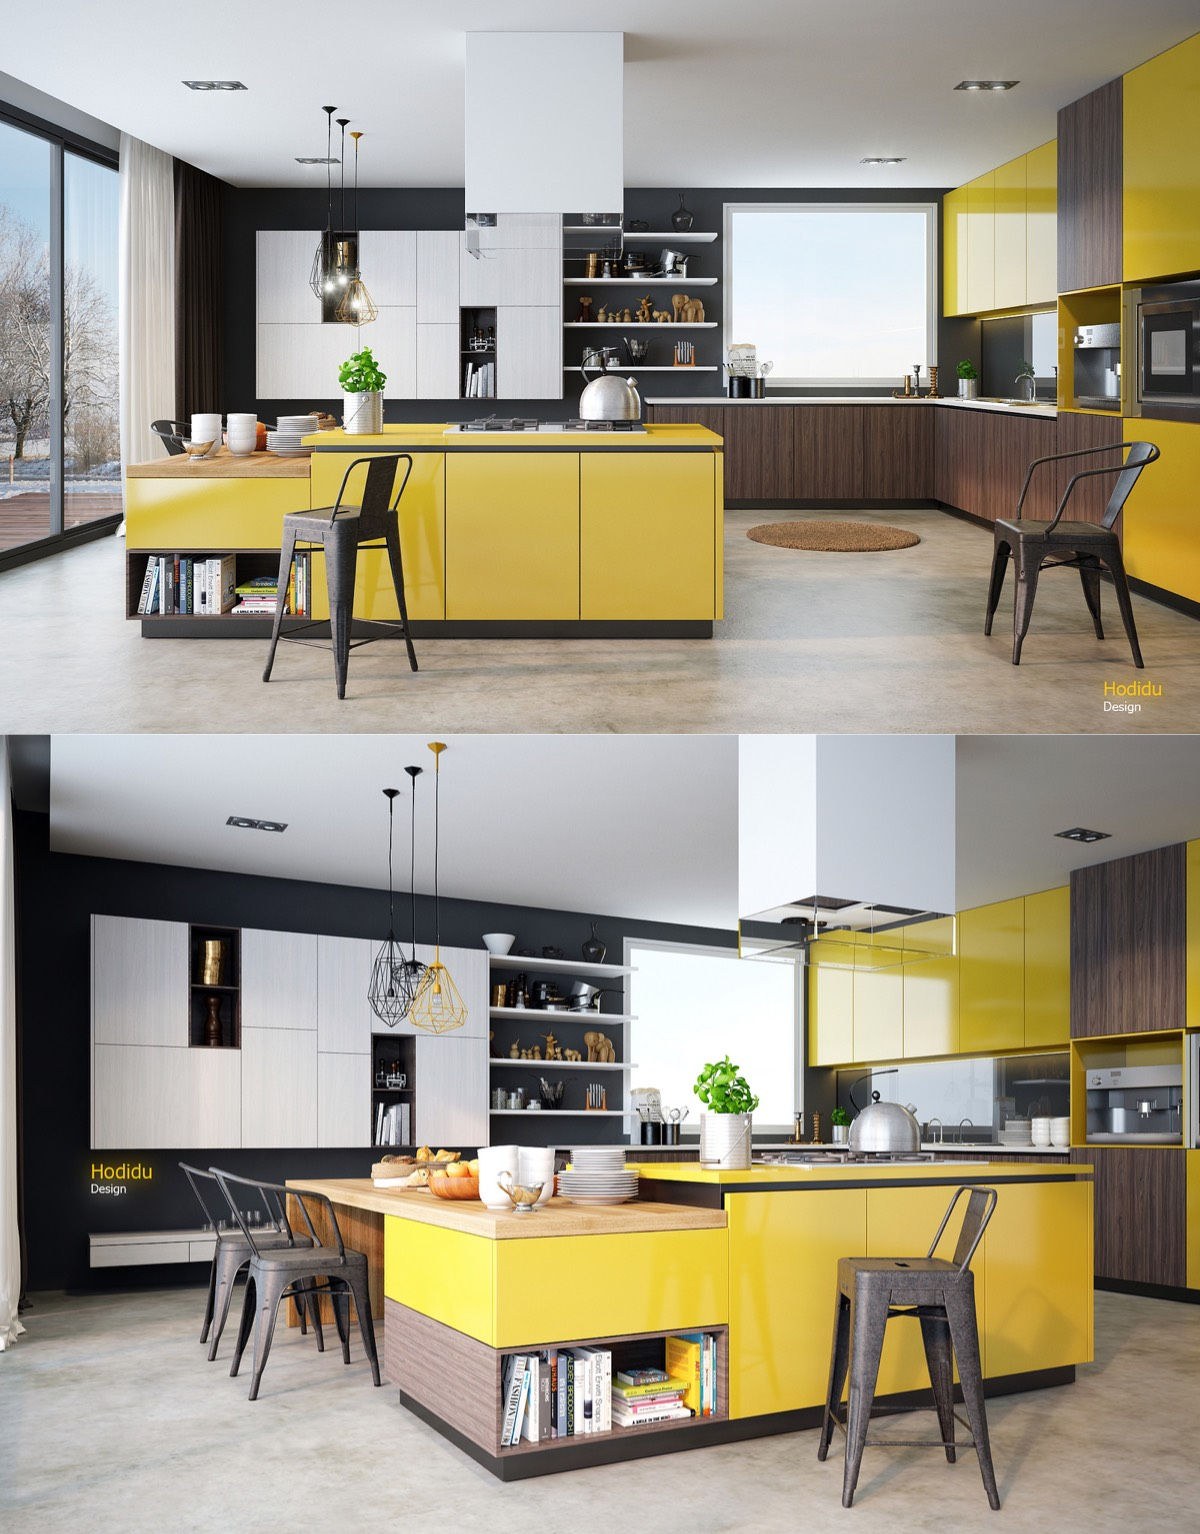 Kitchen With Yellow Walls Trendy Kitchen Yellow Wall Themes And - Light grey kitchen cabinets with yellow walls